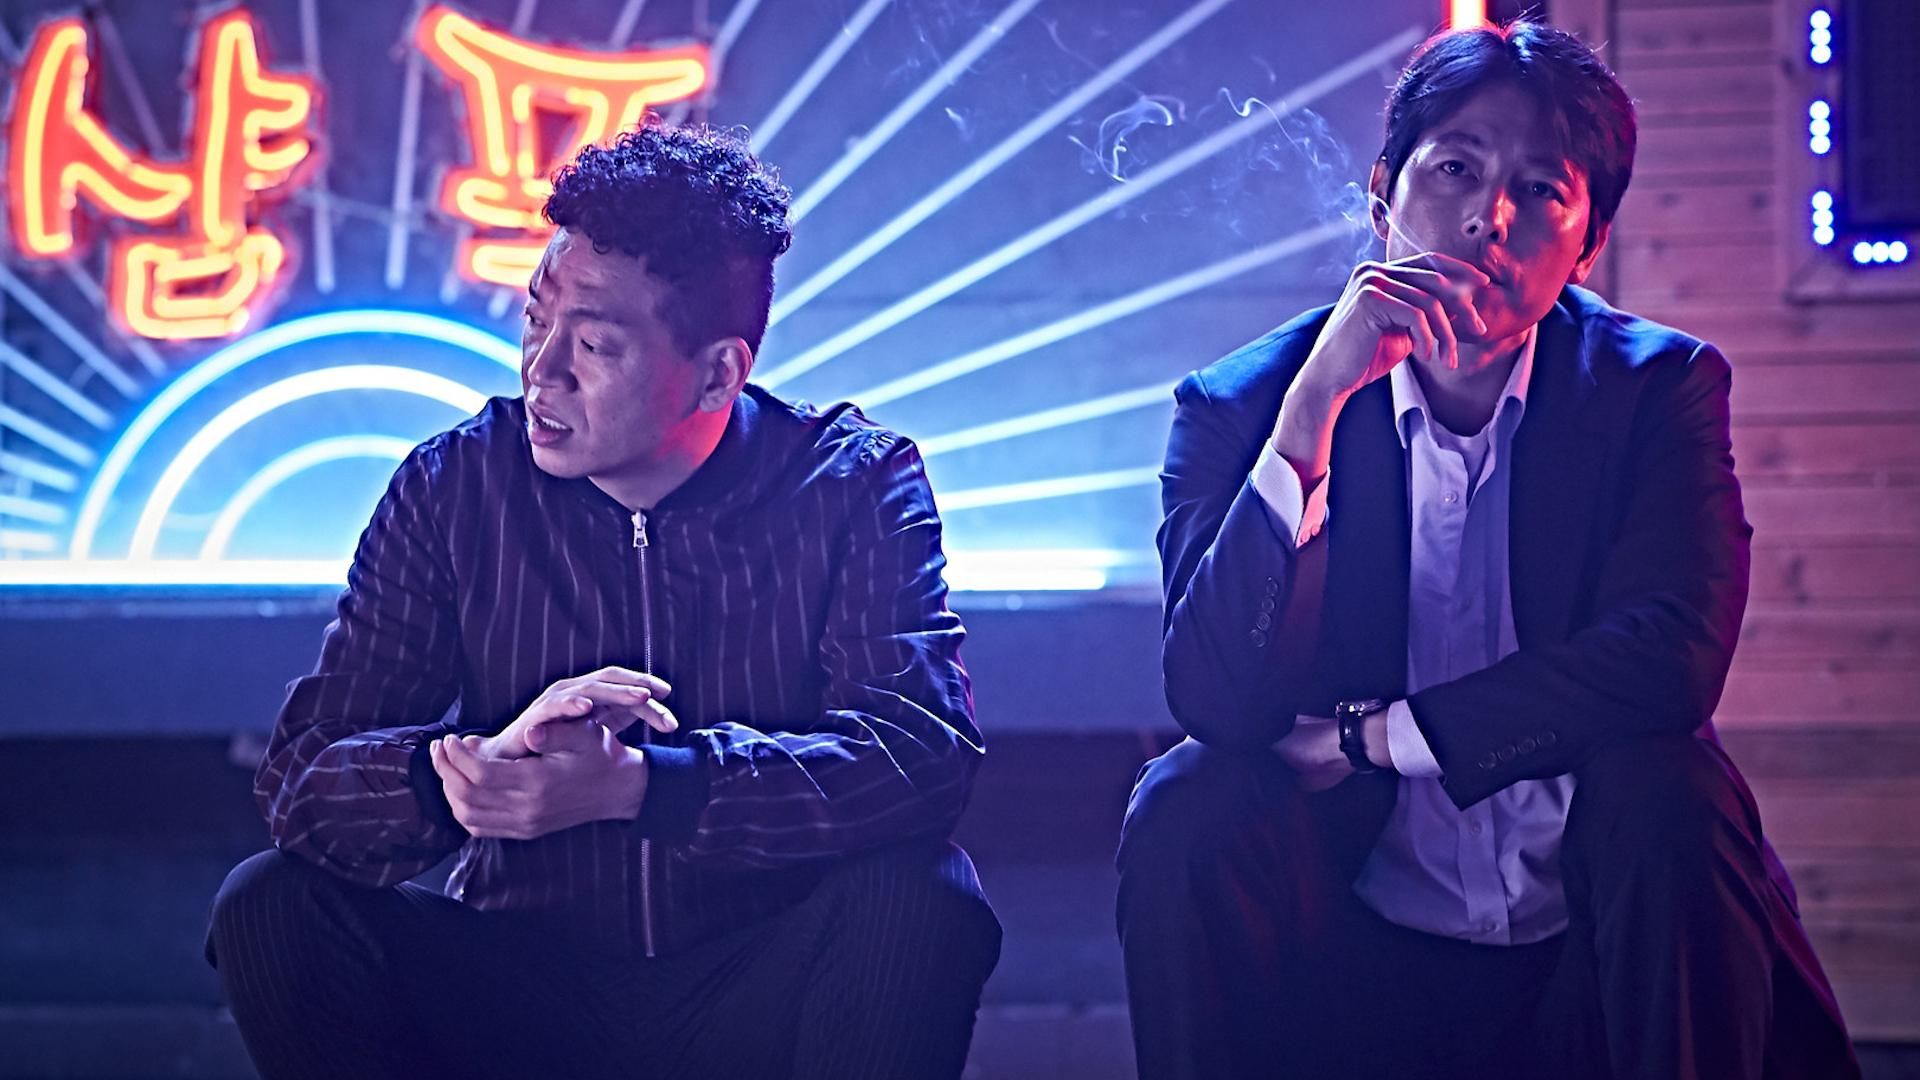 A man in a track jacket and another man smoking in a suit sit in front of a neon sign in Beasts Clawing at Straws.